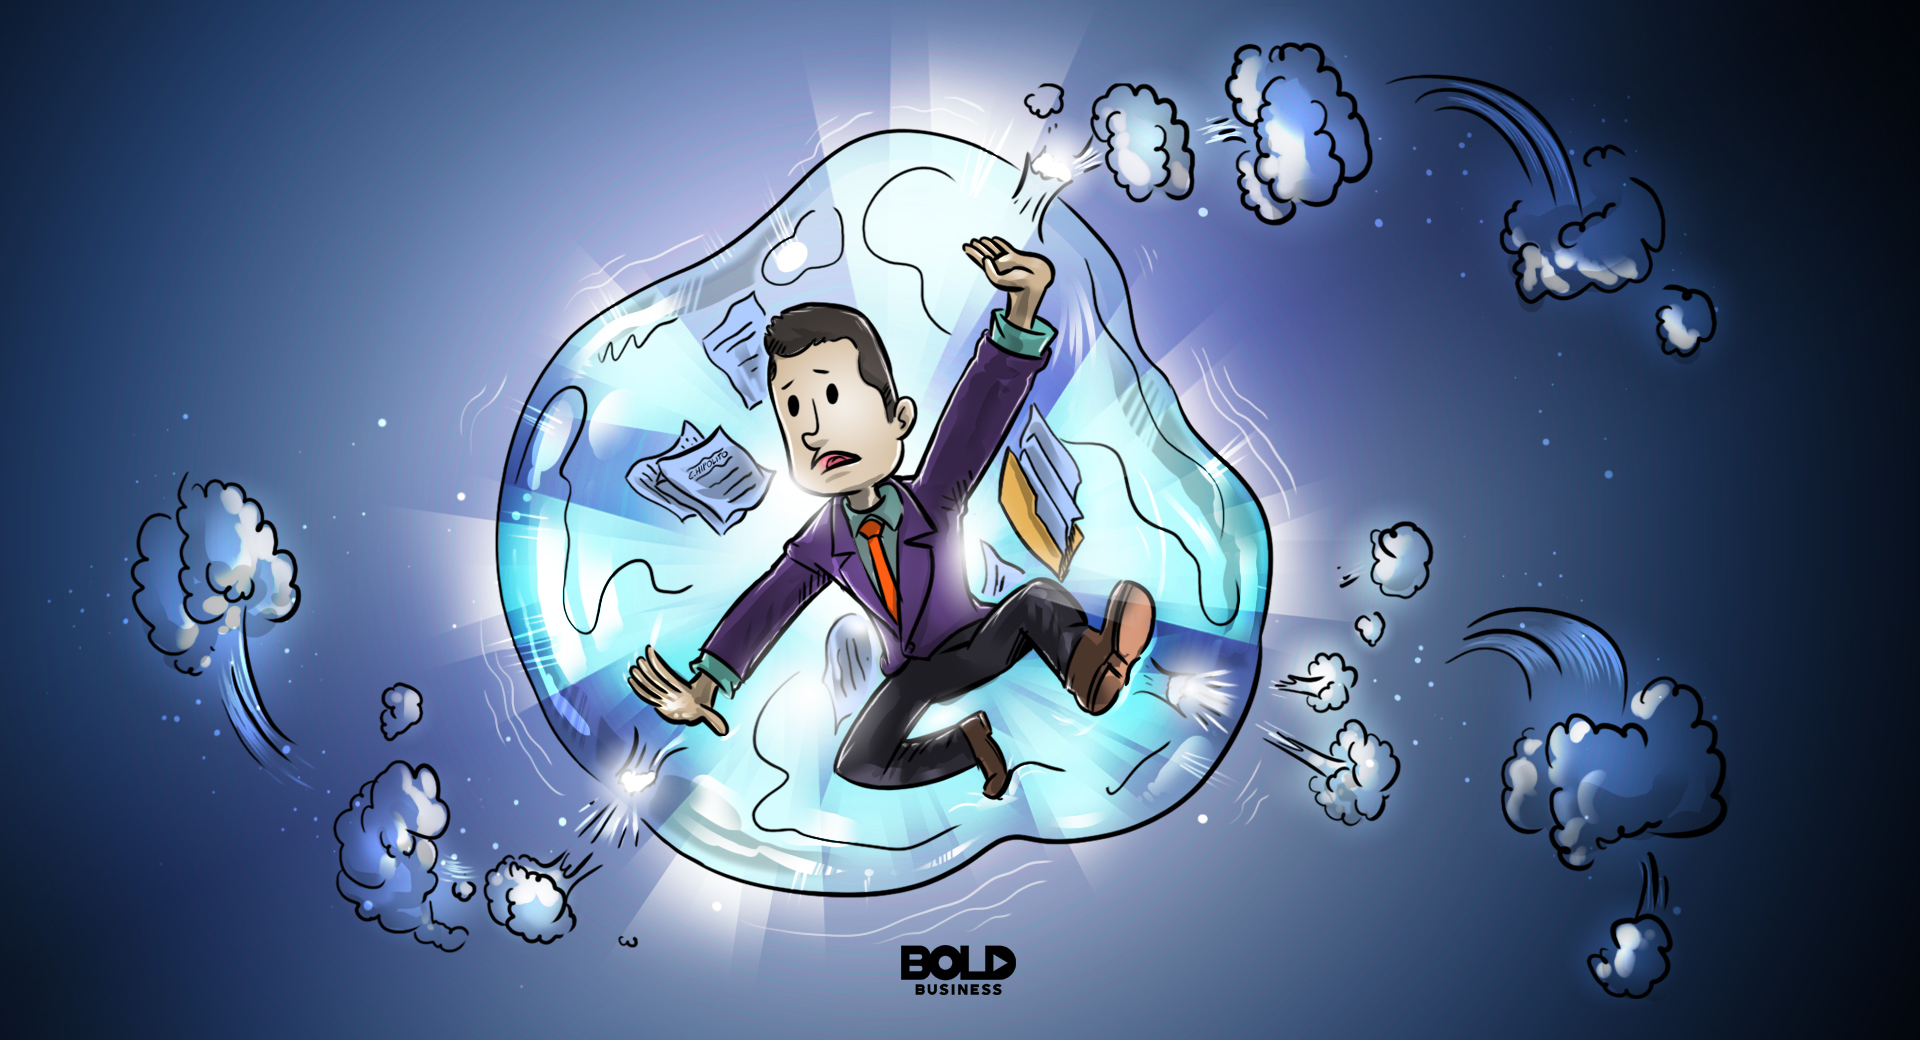 a cartoon of a businessman trapped inside a startup bubble that looks like it's about to burst